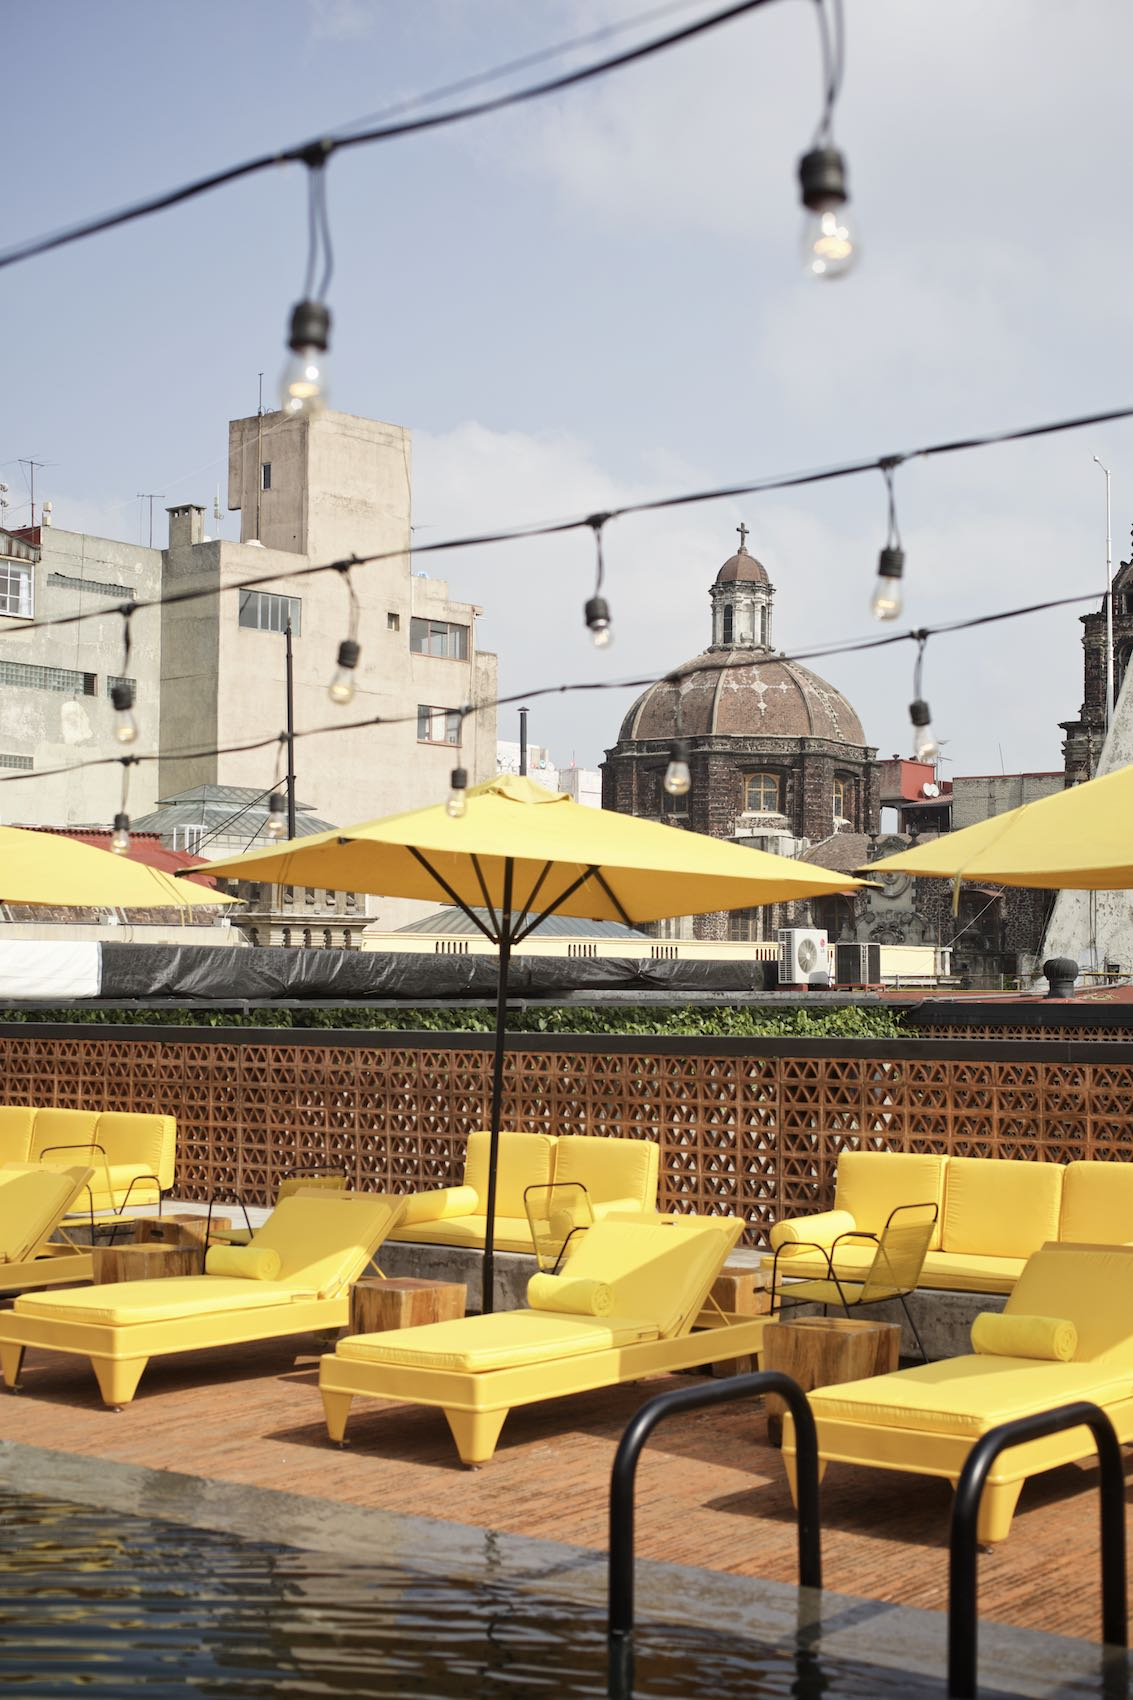 Jody Horton Photography - Hotel pool with vibrant yellow furniture in Mexico City.